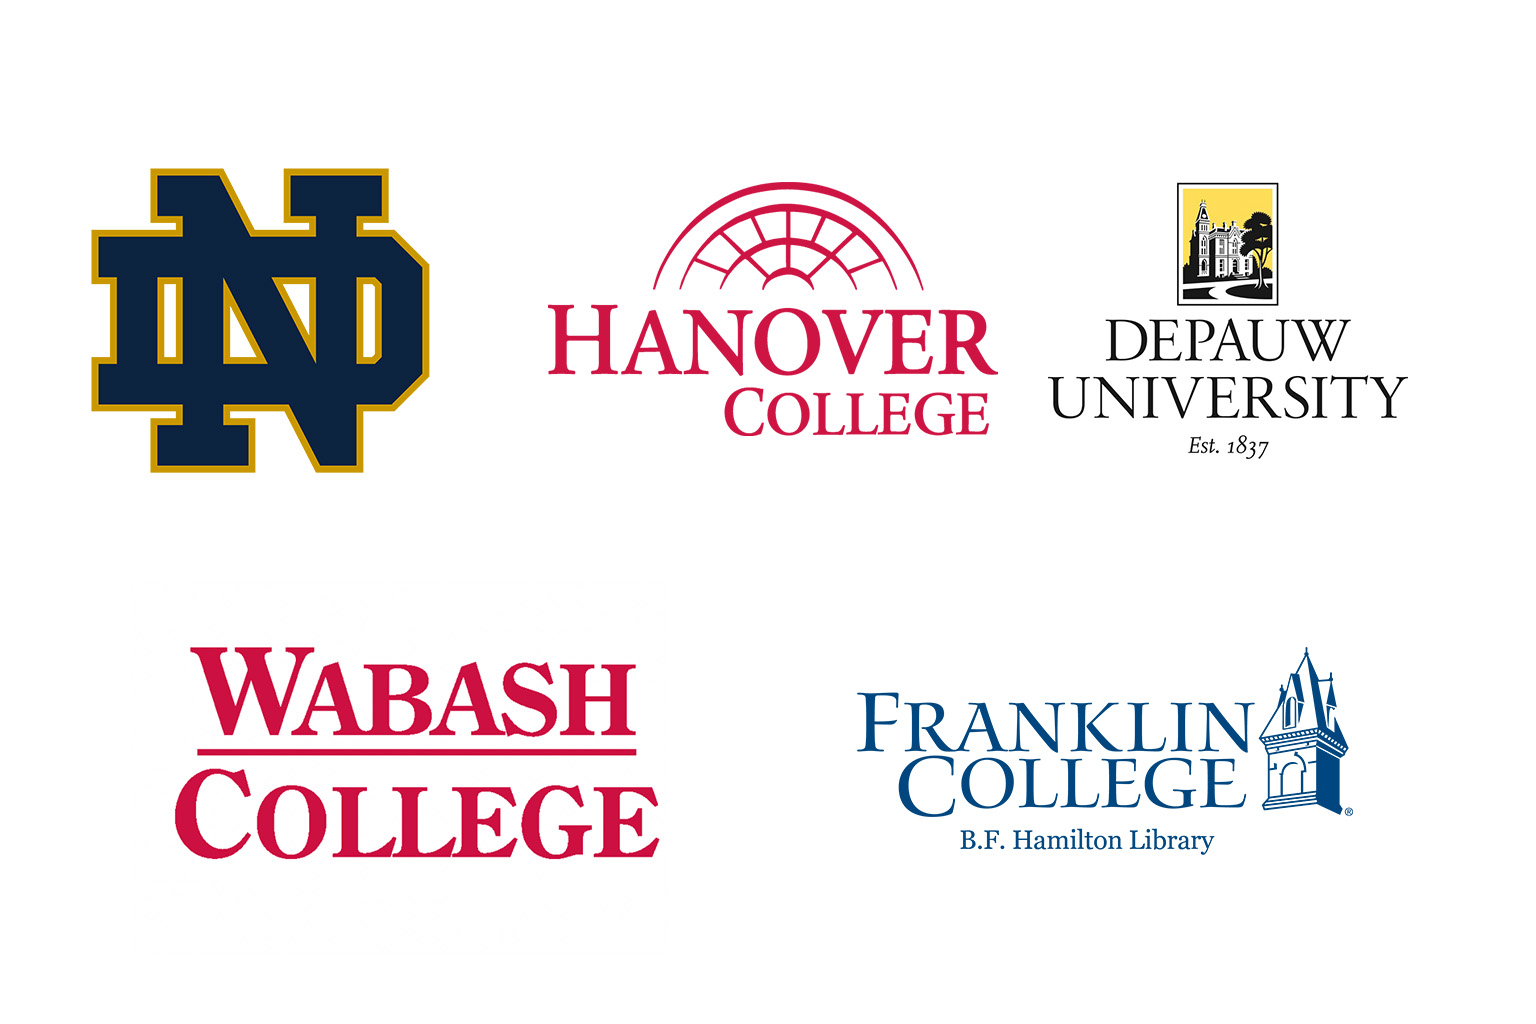 university-logos-together.jpg